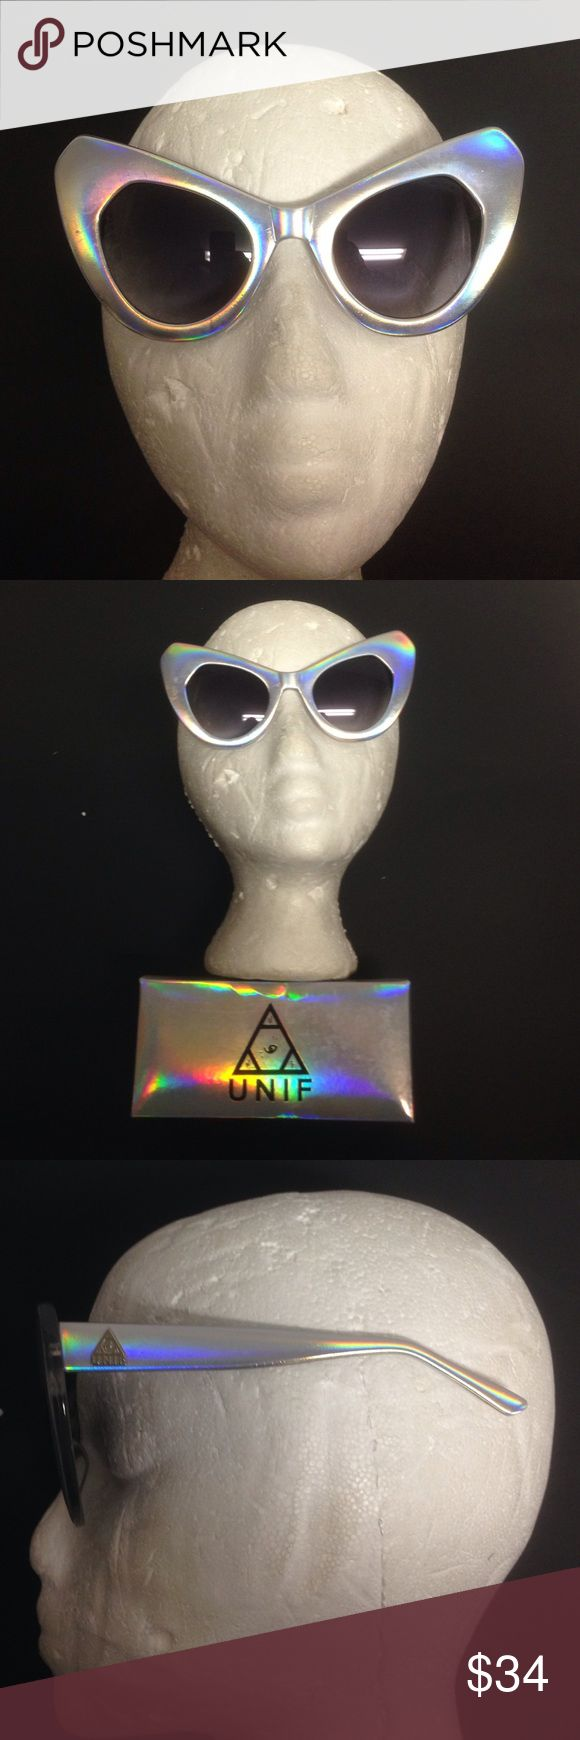 Sun glasses UNIF the shadys hologram new pinup Brand New in box UNIF sunglasses hologram silver style name The Shady color is hologram pin up style 1b UNIF Accessories Glasses